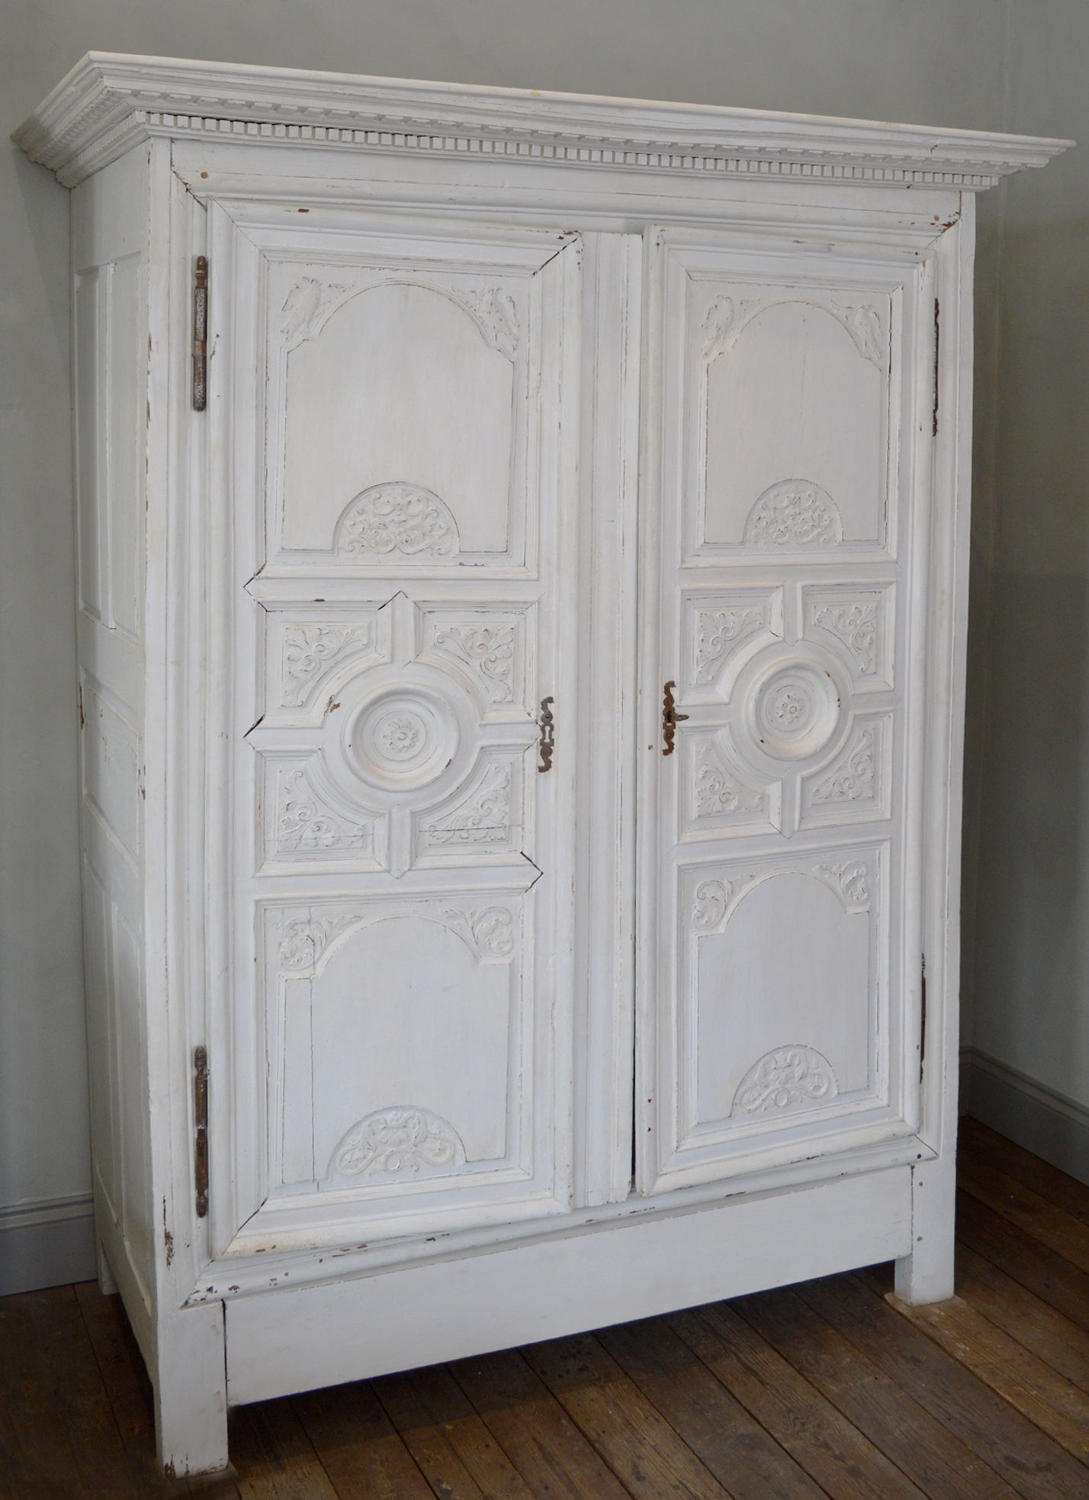 18thC Large French Rennaise Regence Marriage Armoire (1720)